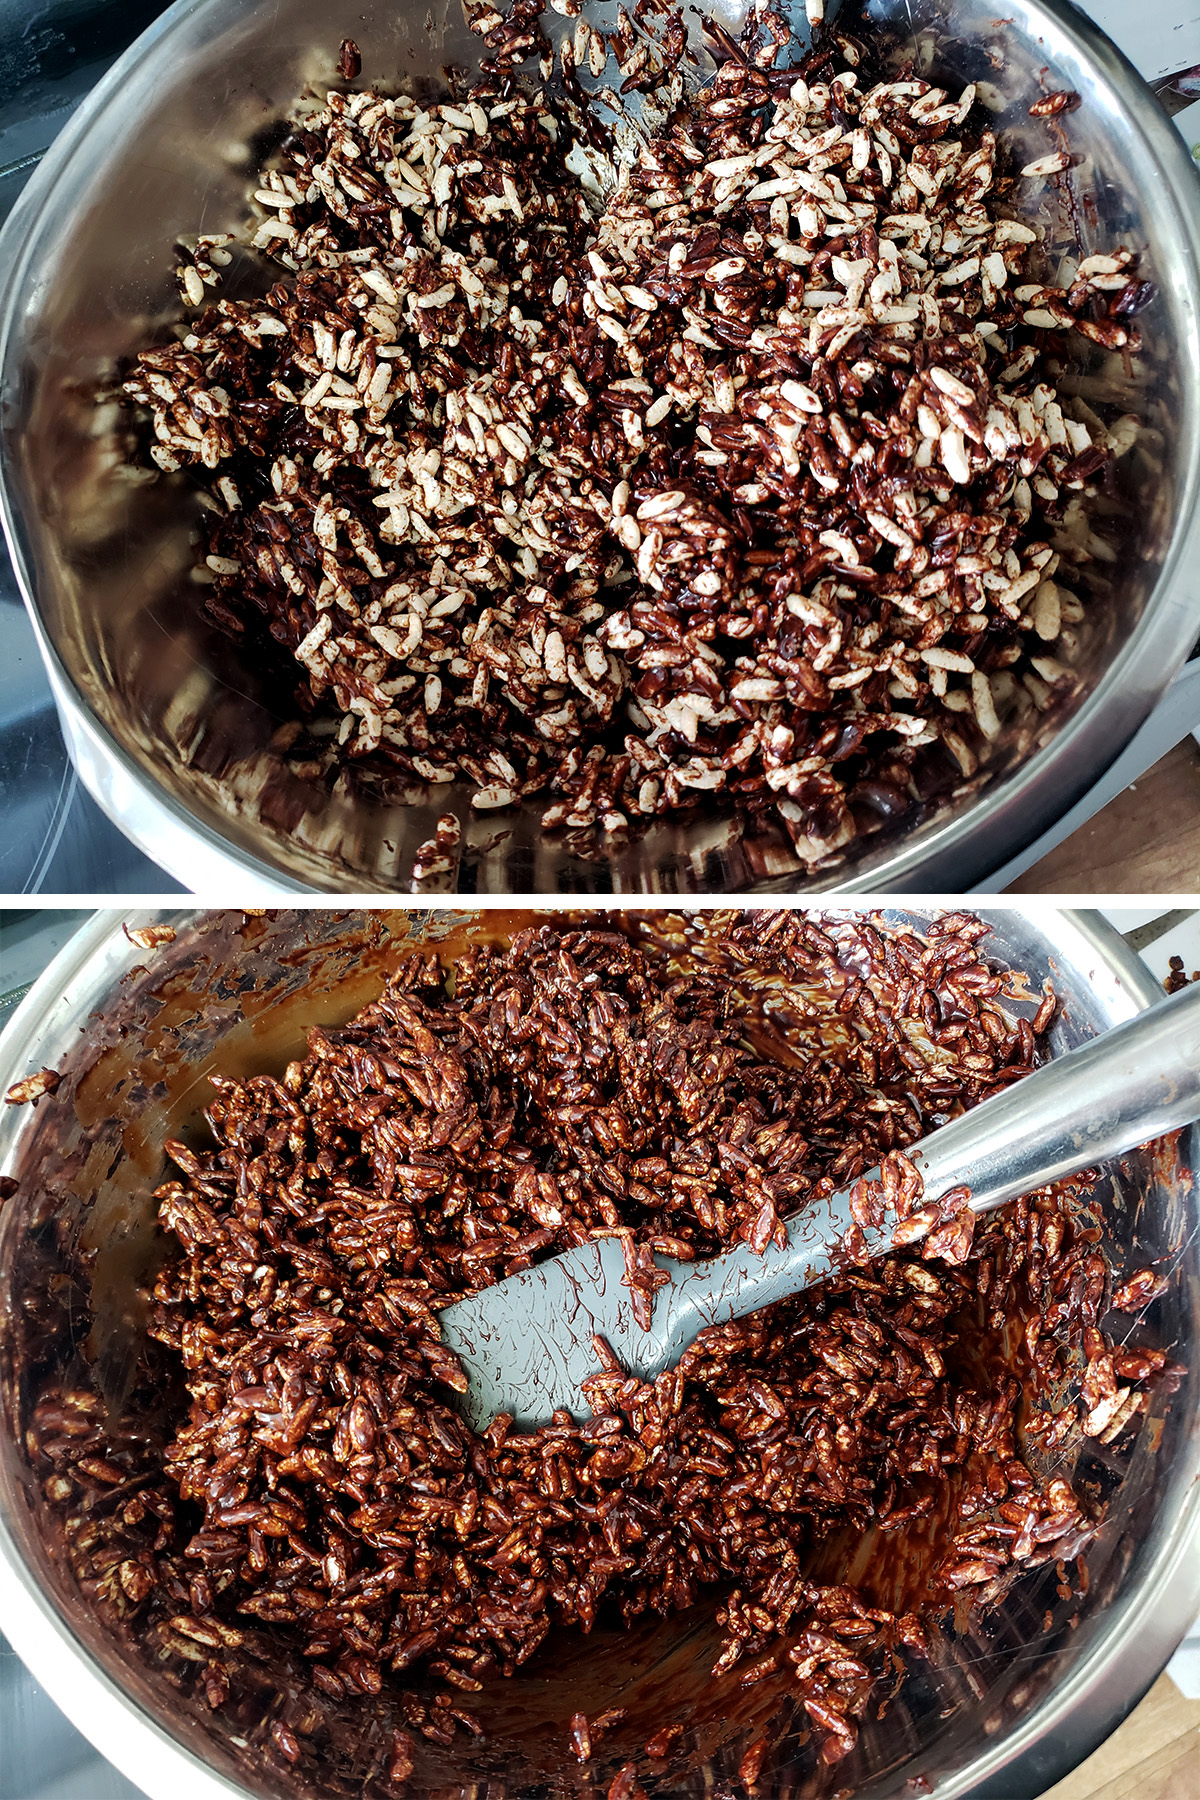 A two part image showing the chocolate caramel being mixed in with the cereal. In the first image, the caramel is only partially mixed in. In the second, it coats all the cereal.